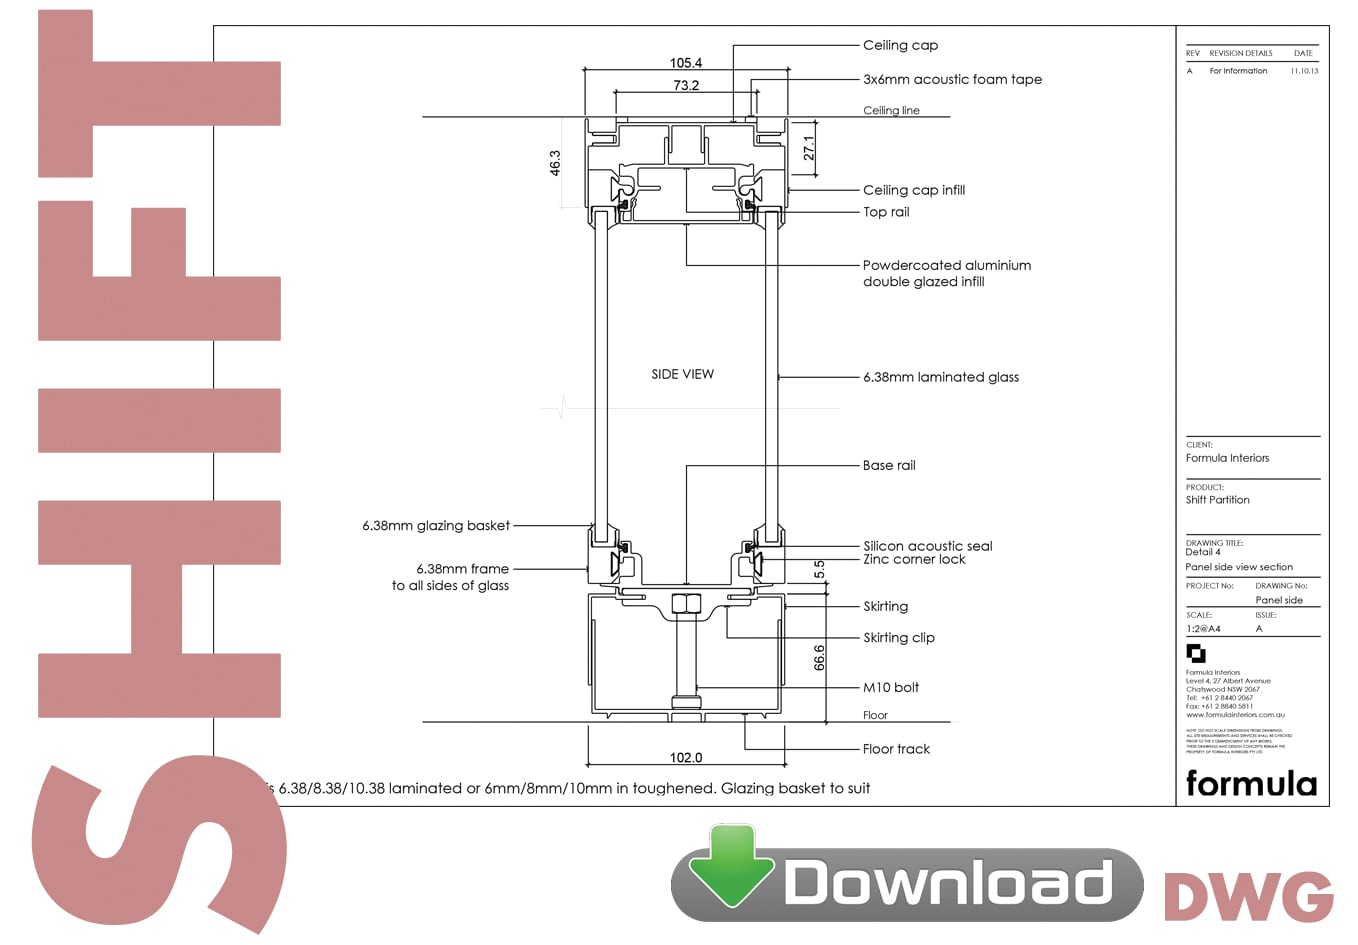 Shift Partition System DWG download - Formula Interiors